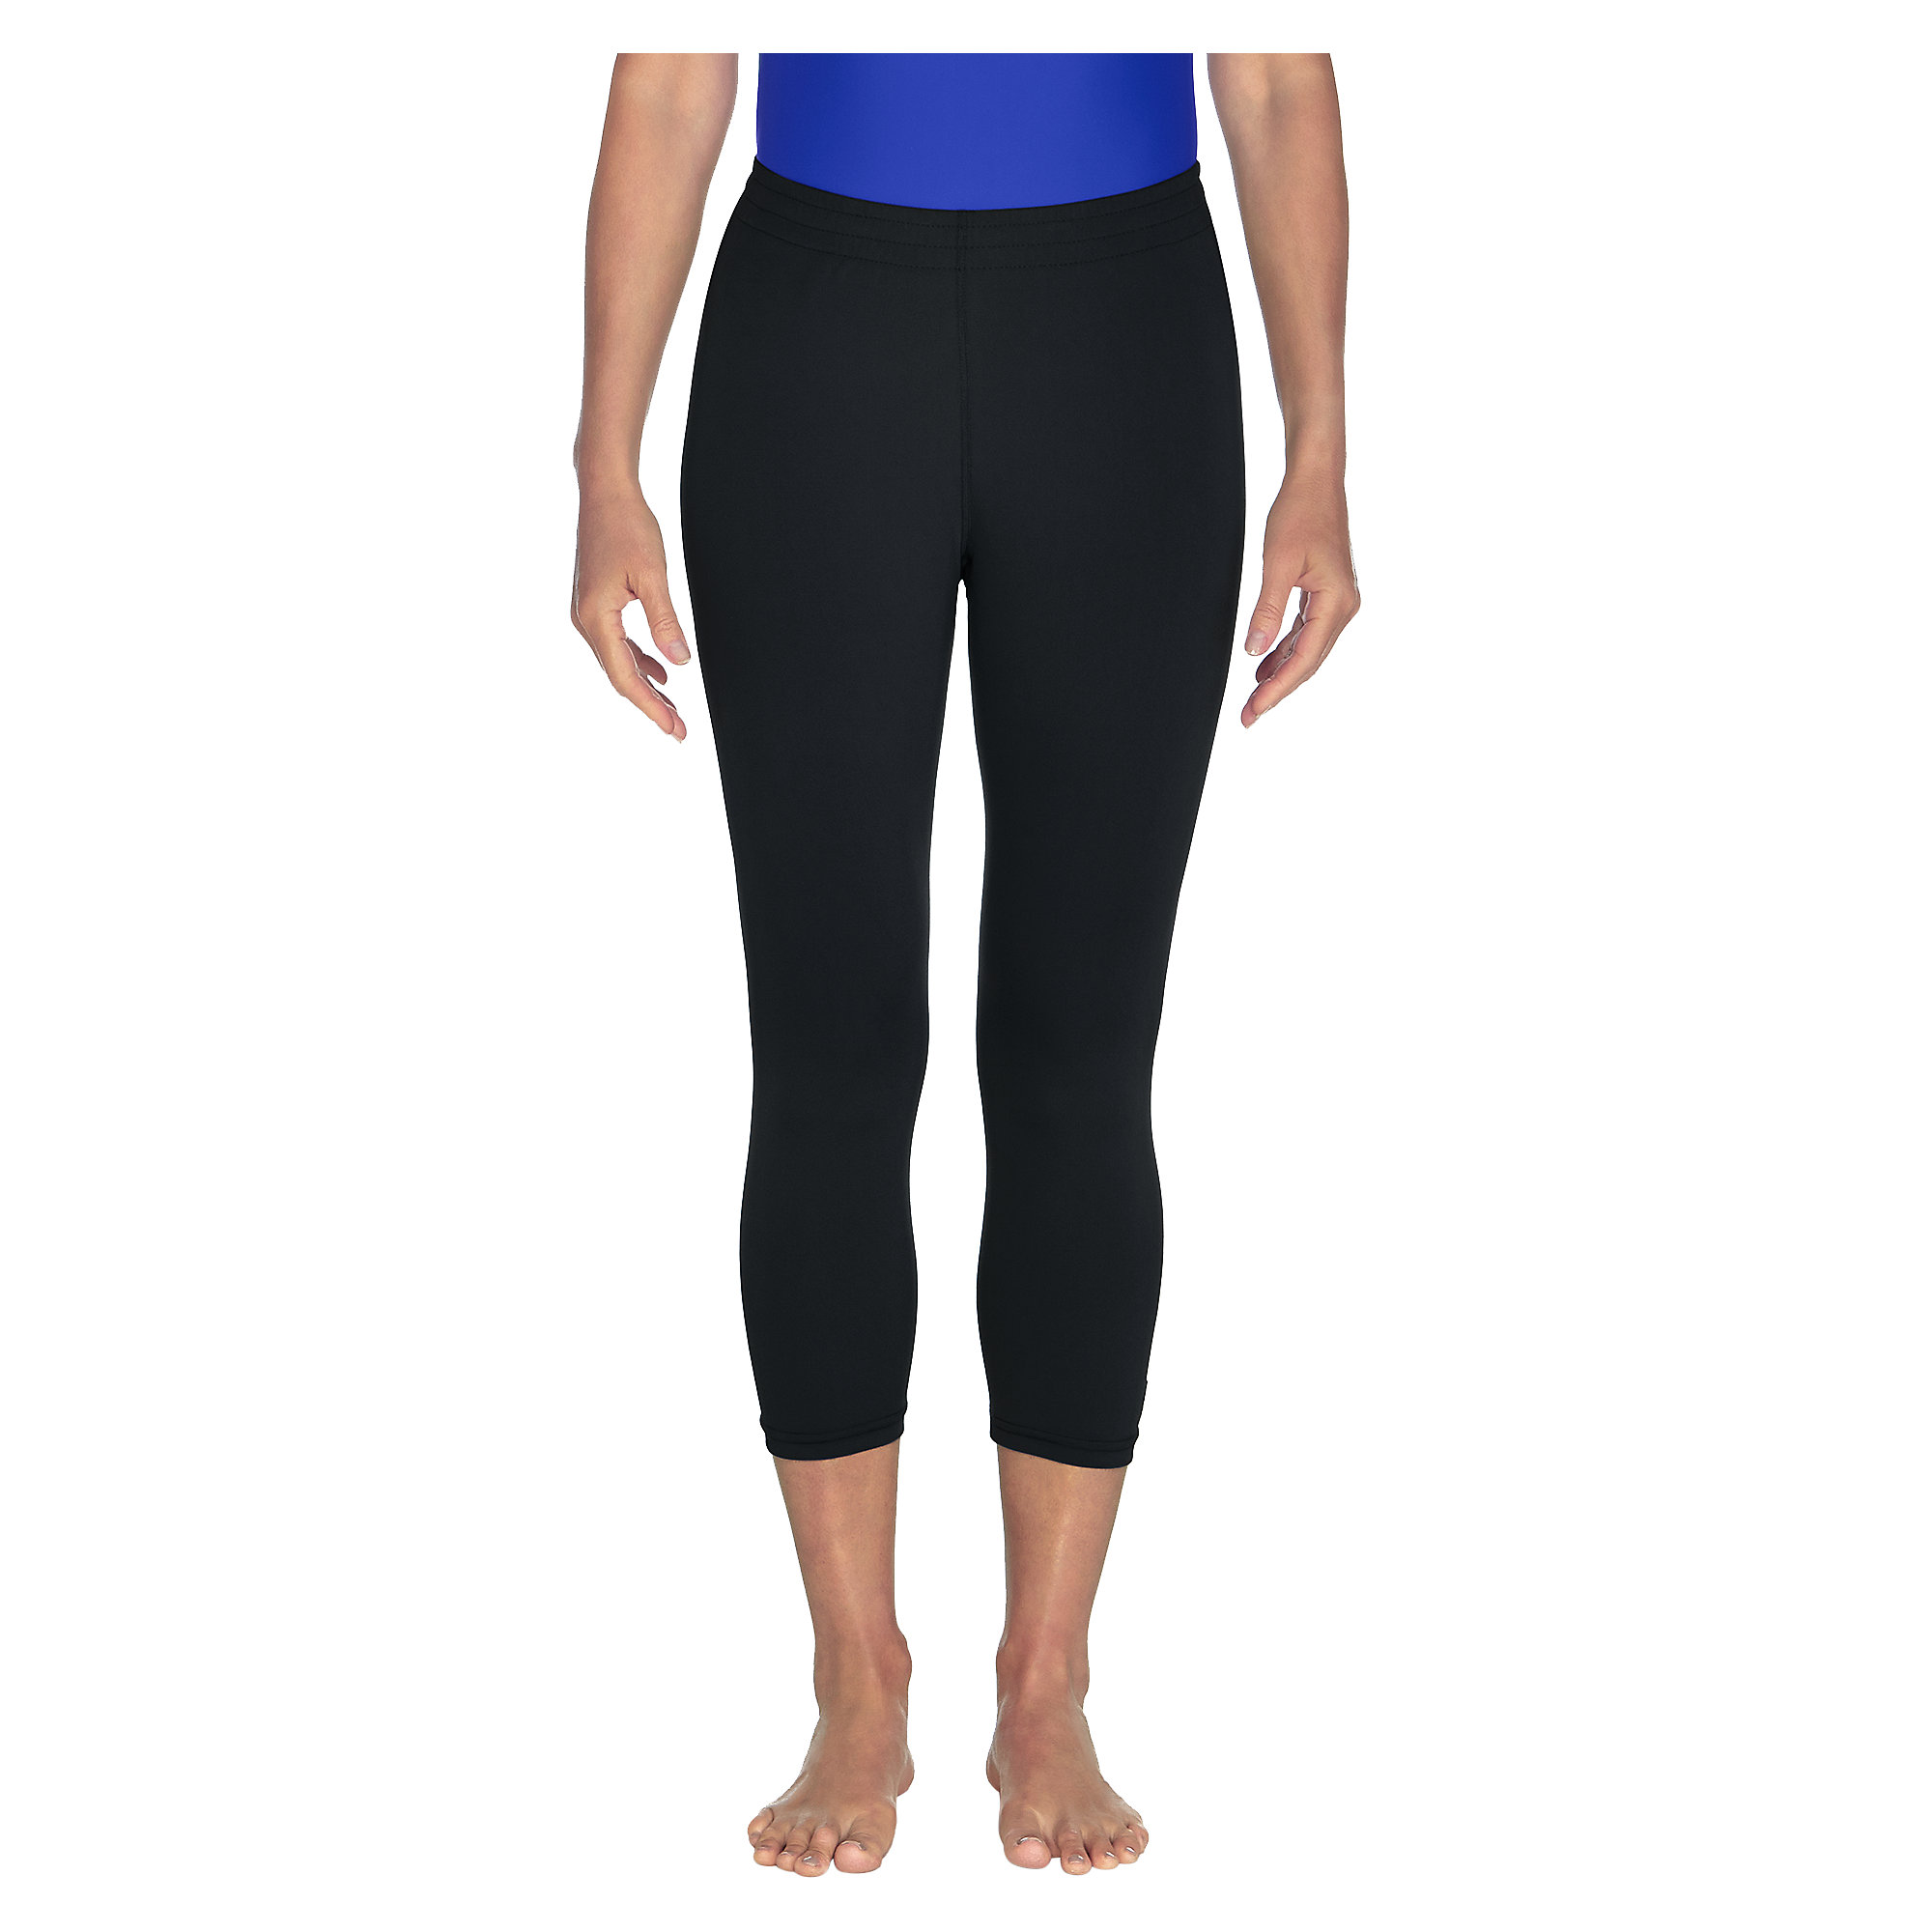 ajaykumarchejarla.ml offers 51 swim capri pants products. About 39% of these are swimwear & beachwear, 23% are fitness & yoga wear, and 5% are training & jogging wear. A wide variety of swim capri pants options are available to you, such as l, s, and xl.